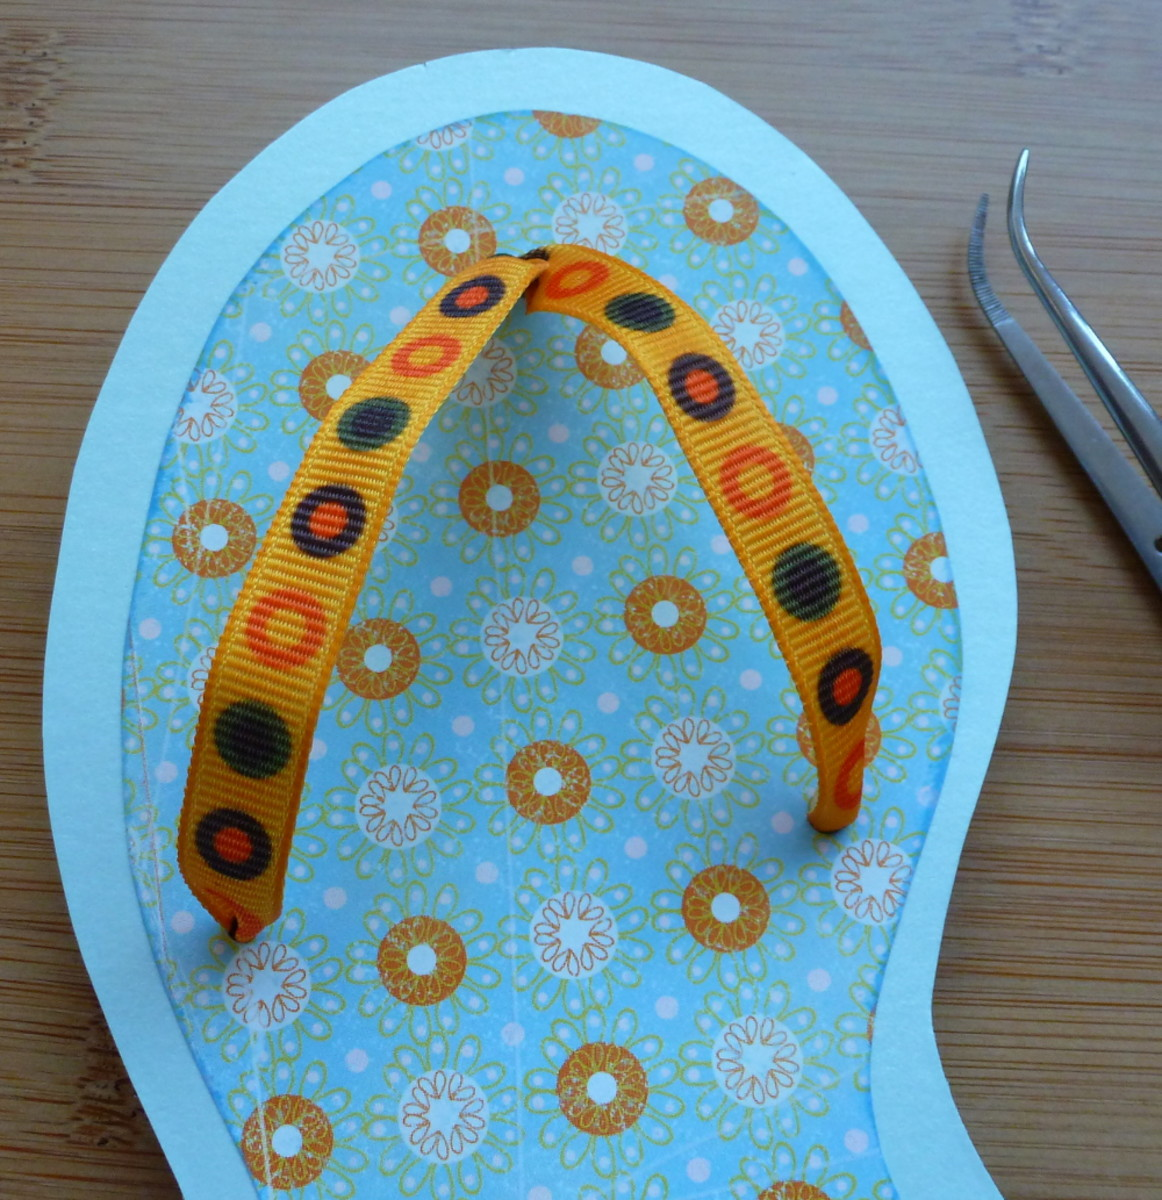 85f3f2379 Putting the ribbon into the flip flop card summer craft tutorial how to.